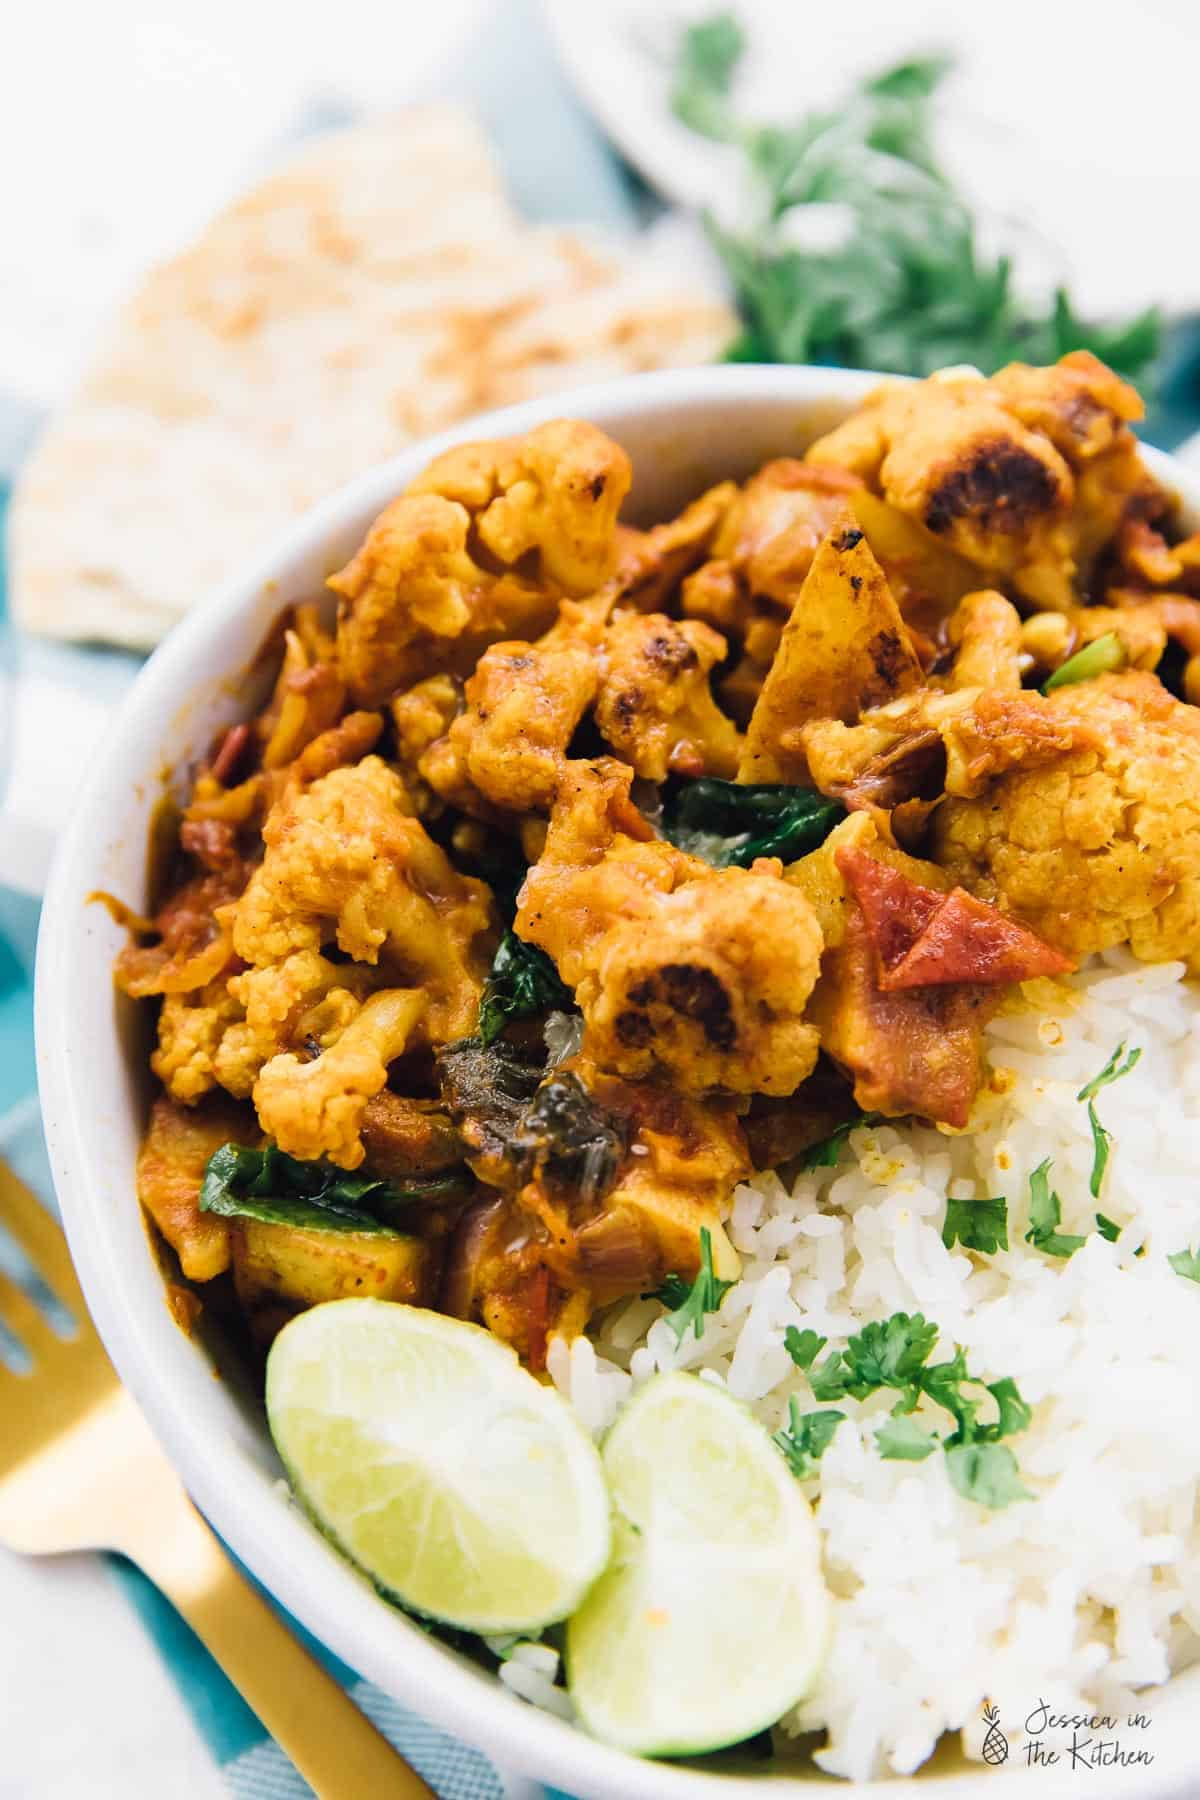 This Cauliflower and Potato Curry dish is perfect for a weeknight dinner! It's loaded with delicious spices and comes together so easily! via https://jessicainthekitchen.com